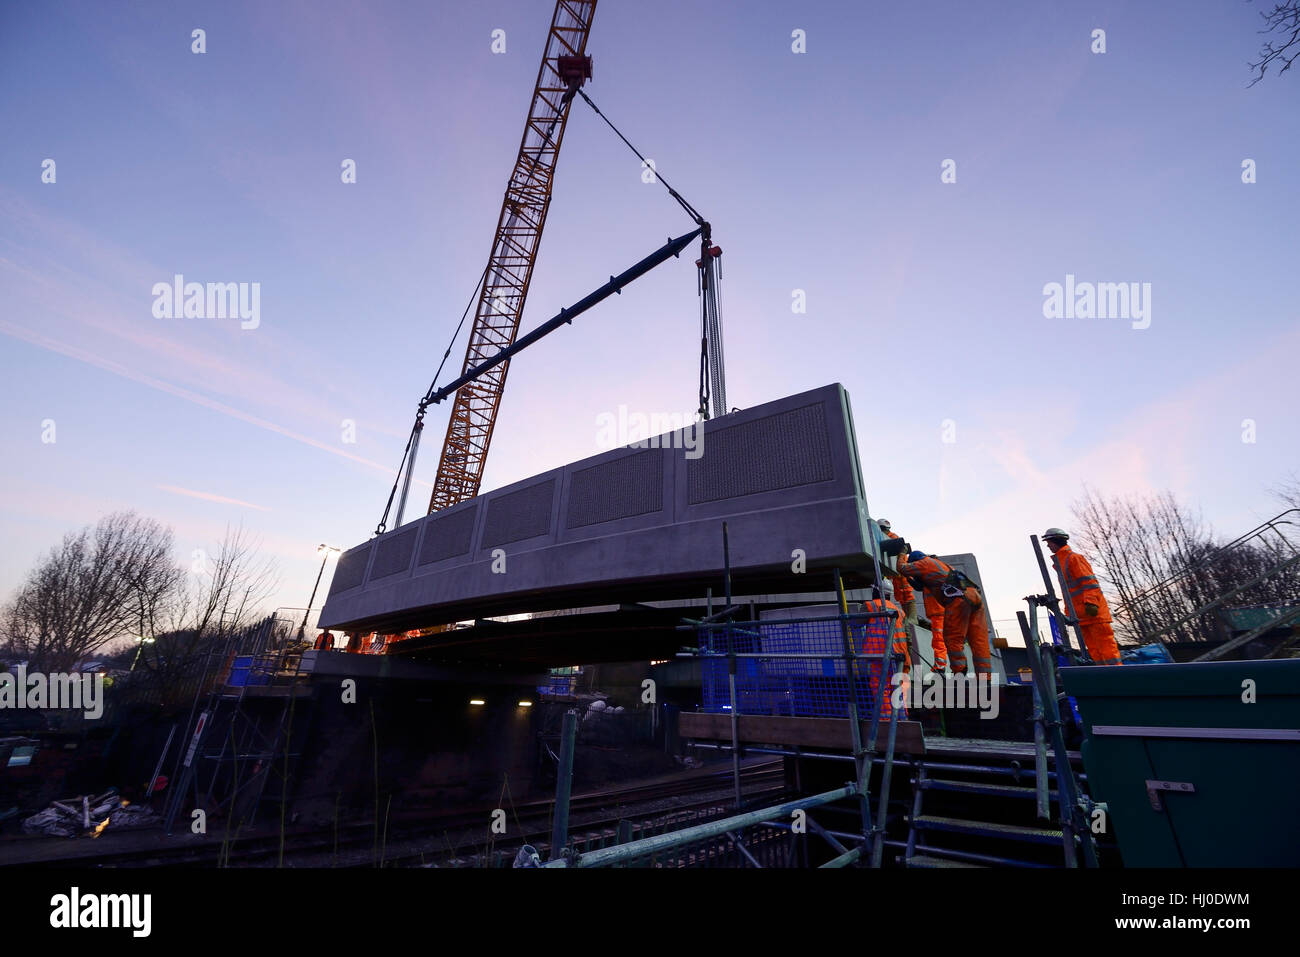 Chester, UK. 21st January 2017. Installation of a concrete road bridge at first light on Brook Lane over the Merseyrail - Stock Image